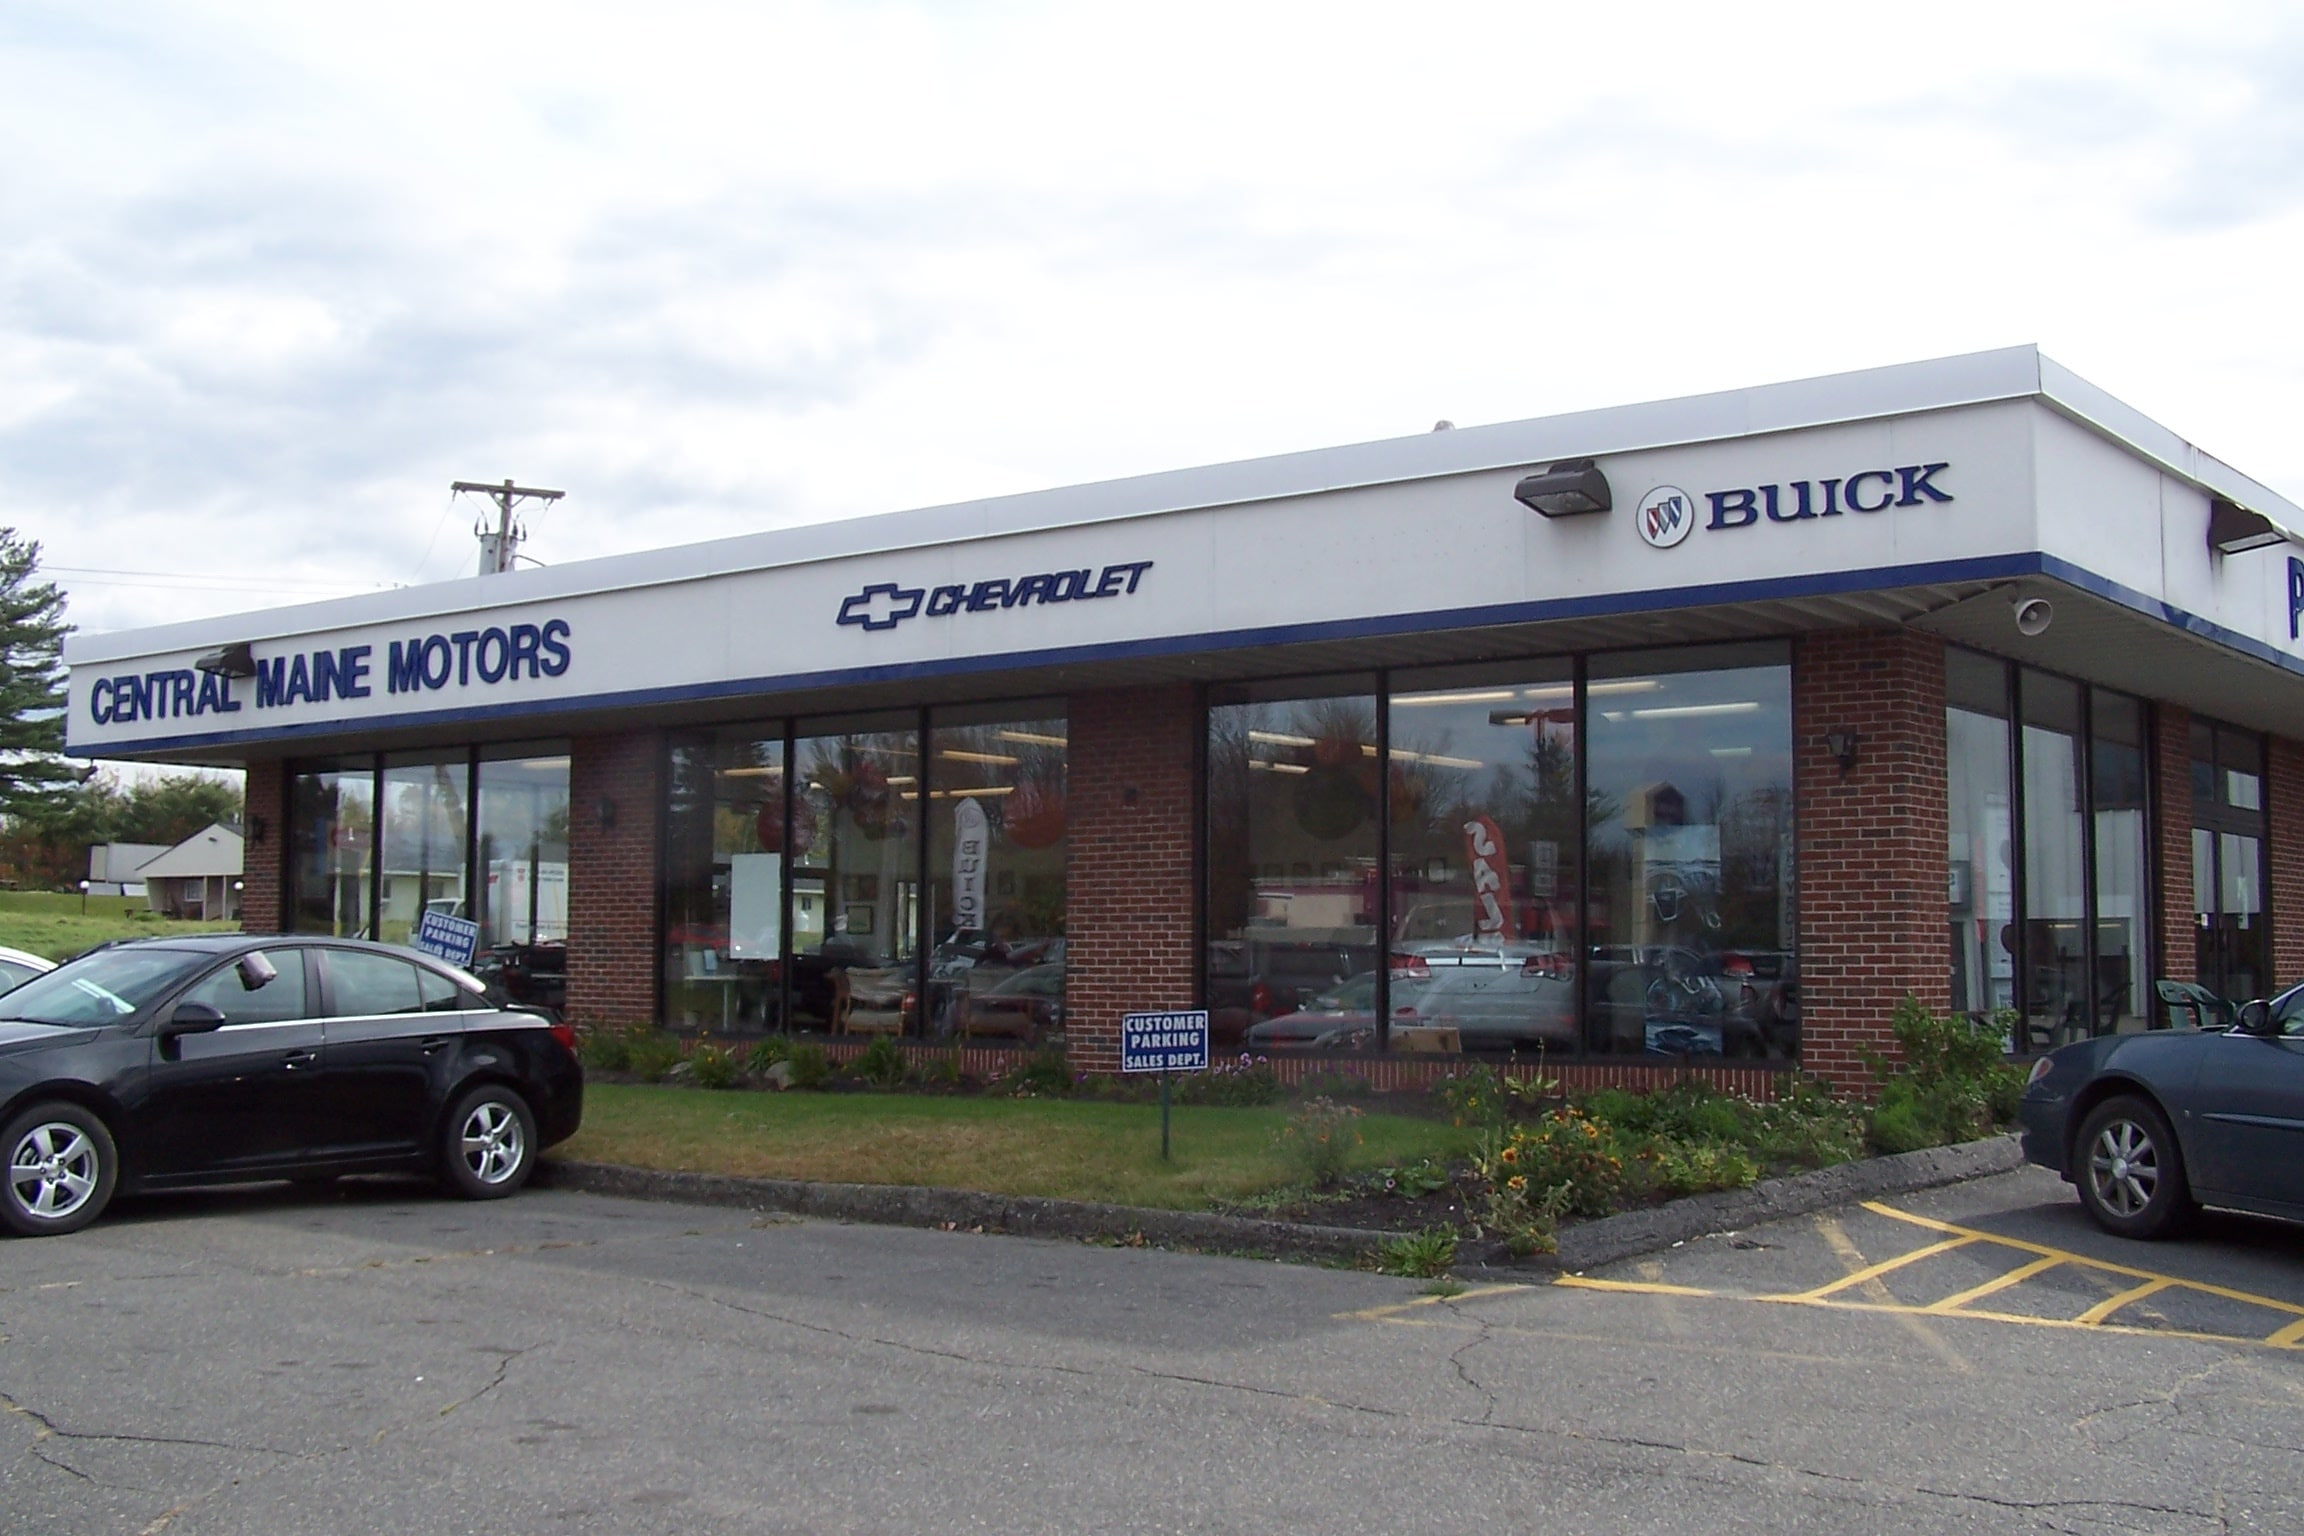 About central maine chevy buick me chevy dealership for Central maine motors chevy